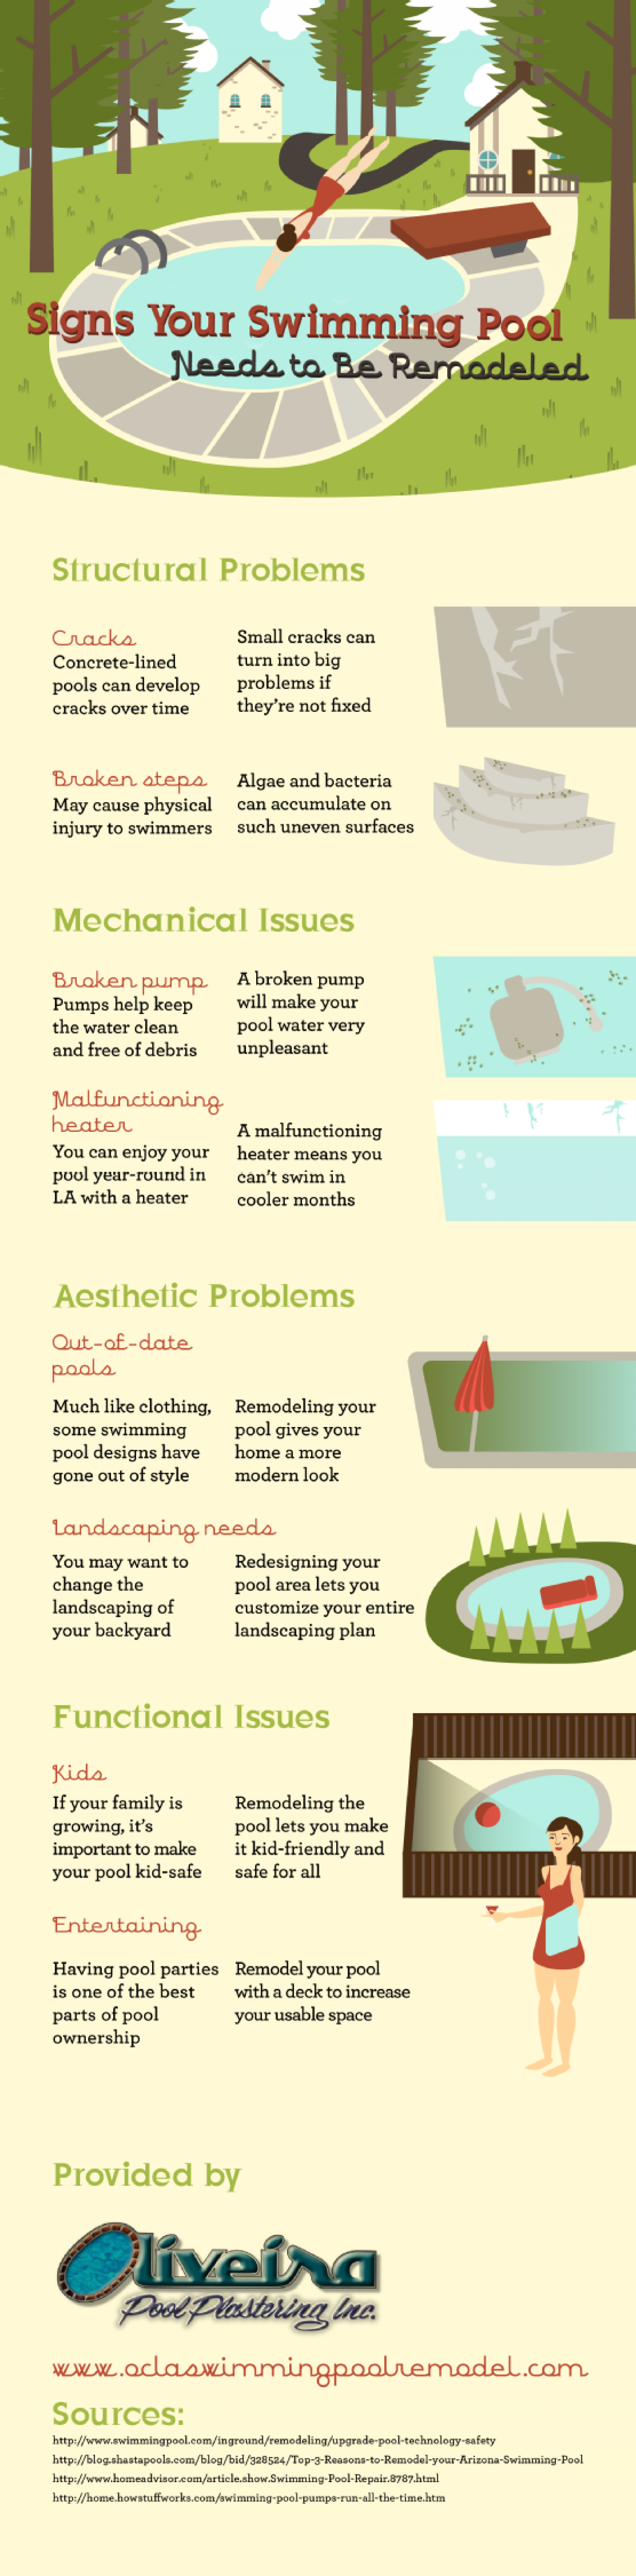 Signs Your Swimming Pool Needs to Be Remodeled Infographic